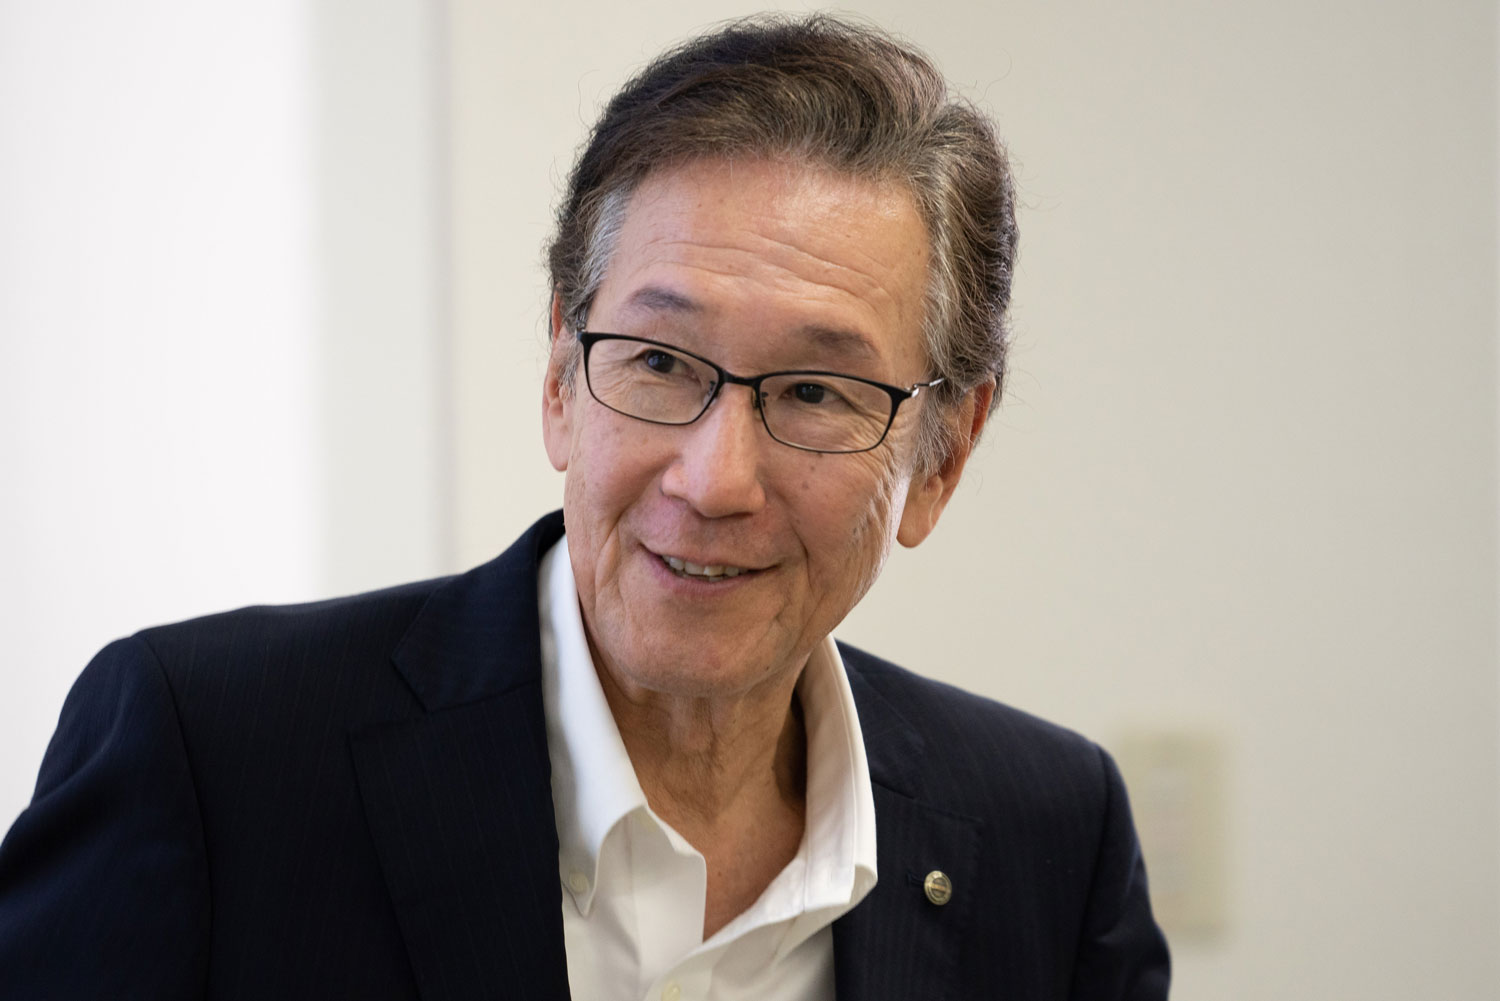 Mr Yuichi Masuda, Senior Executive Managing Officer and Member of the Board Responsible for Product Development as well as Manager of Timepiece Business Unit and the Business Strategy Headquarters